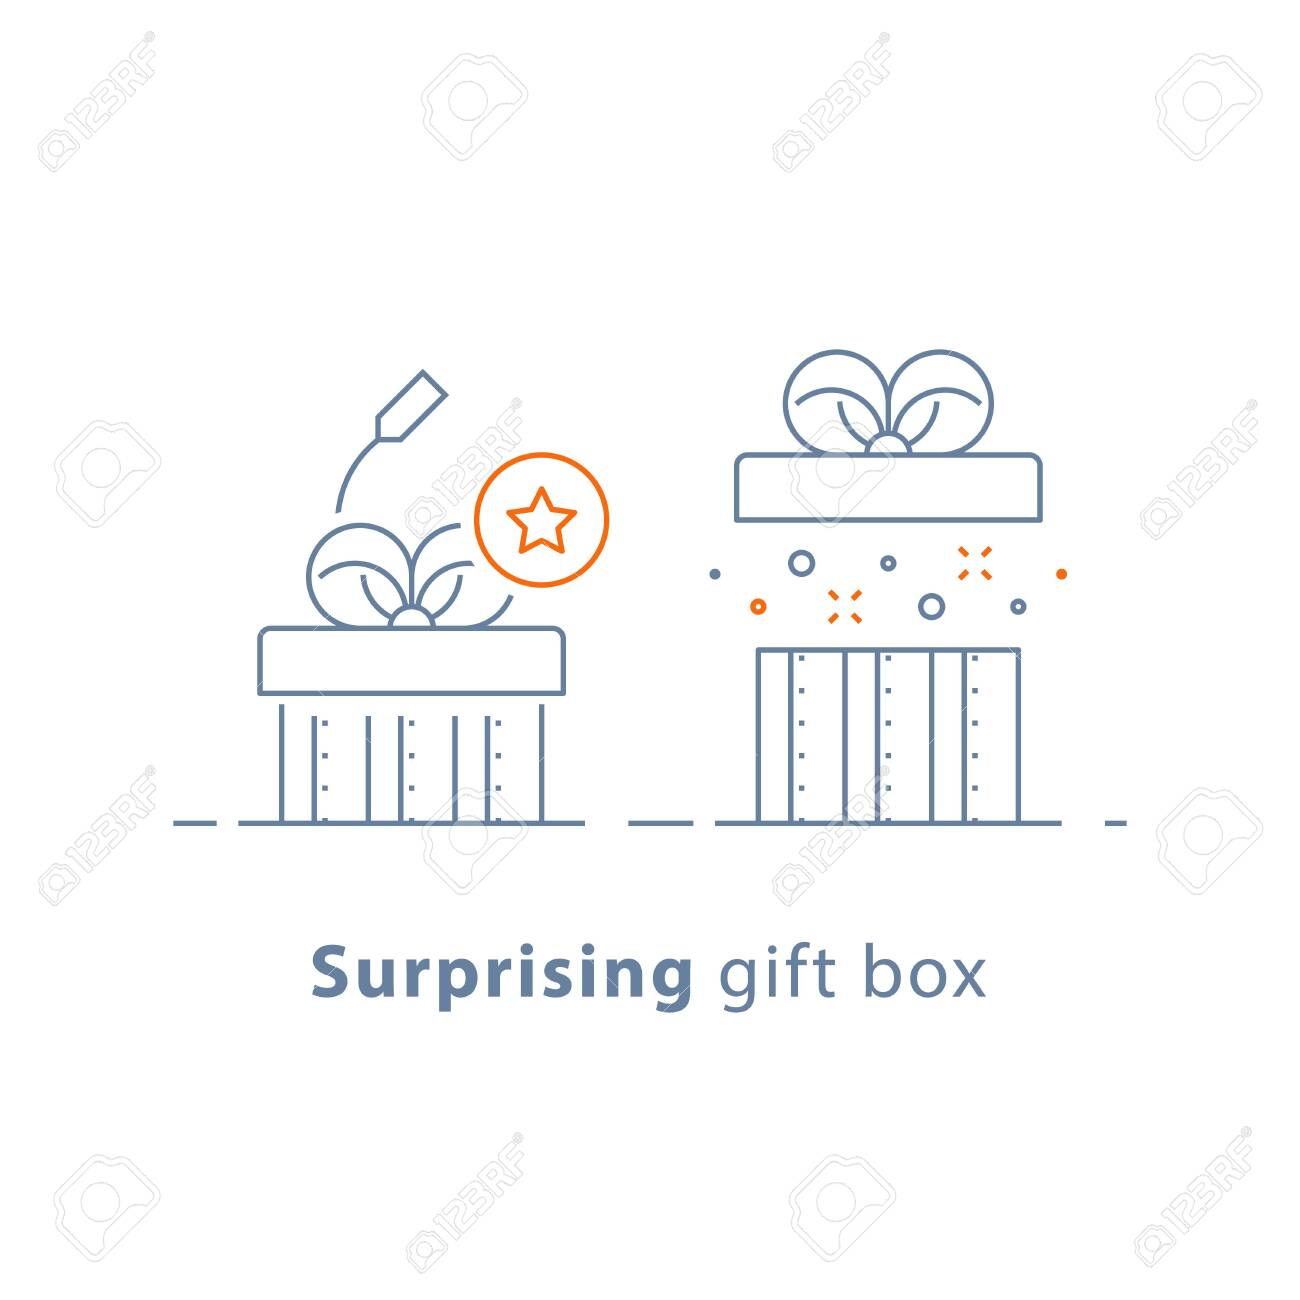 Surprising gift, prize give away, creative present, fun experience, unusual gift idea concept, opened box, line design icon, vector illustration - 128323709